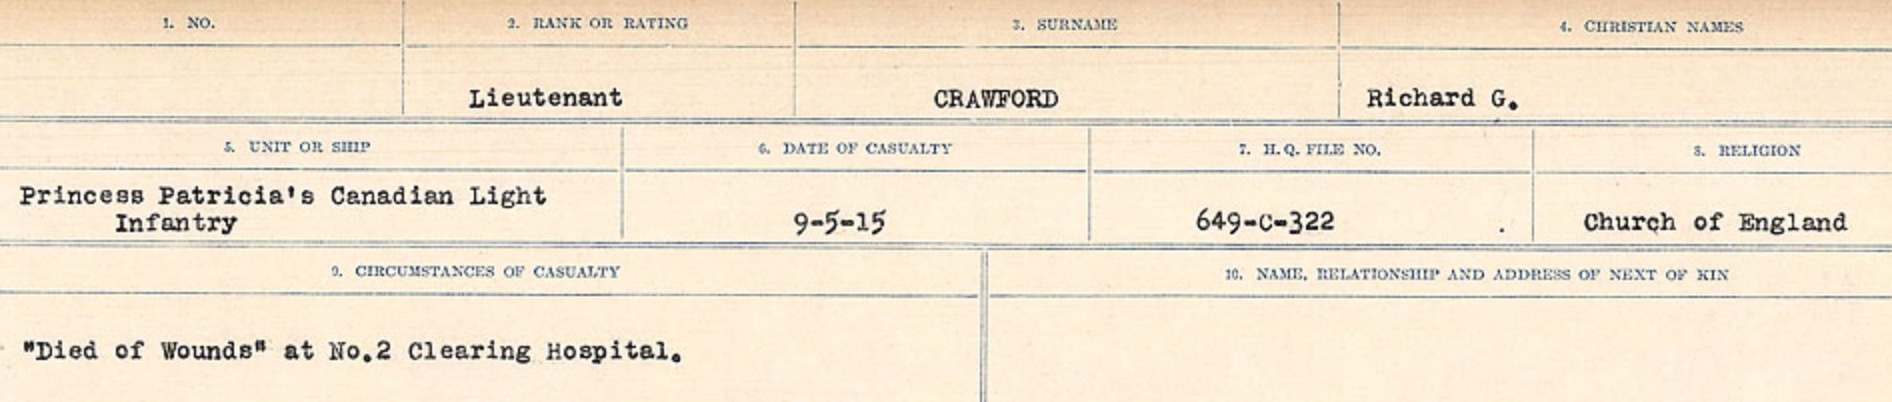 Circumstances of death registers – Source: Library and Archives Canada. CIRCUMSTANCES OF DEATH REGISTERS, FIRST WORLD WAR Surnames: CRABB TO CROSSLAND Microform Sequence 24; Volume Number 31829_B016733. Reference RG150, 1992-93/314, 168. Page 377 of 788.